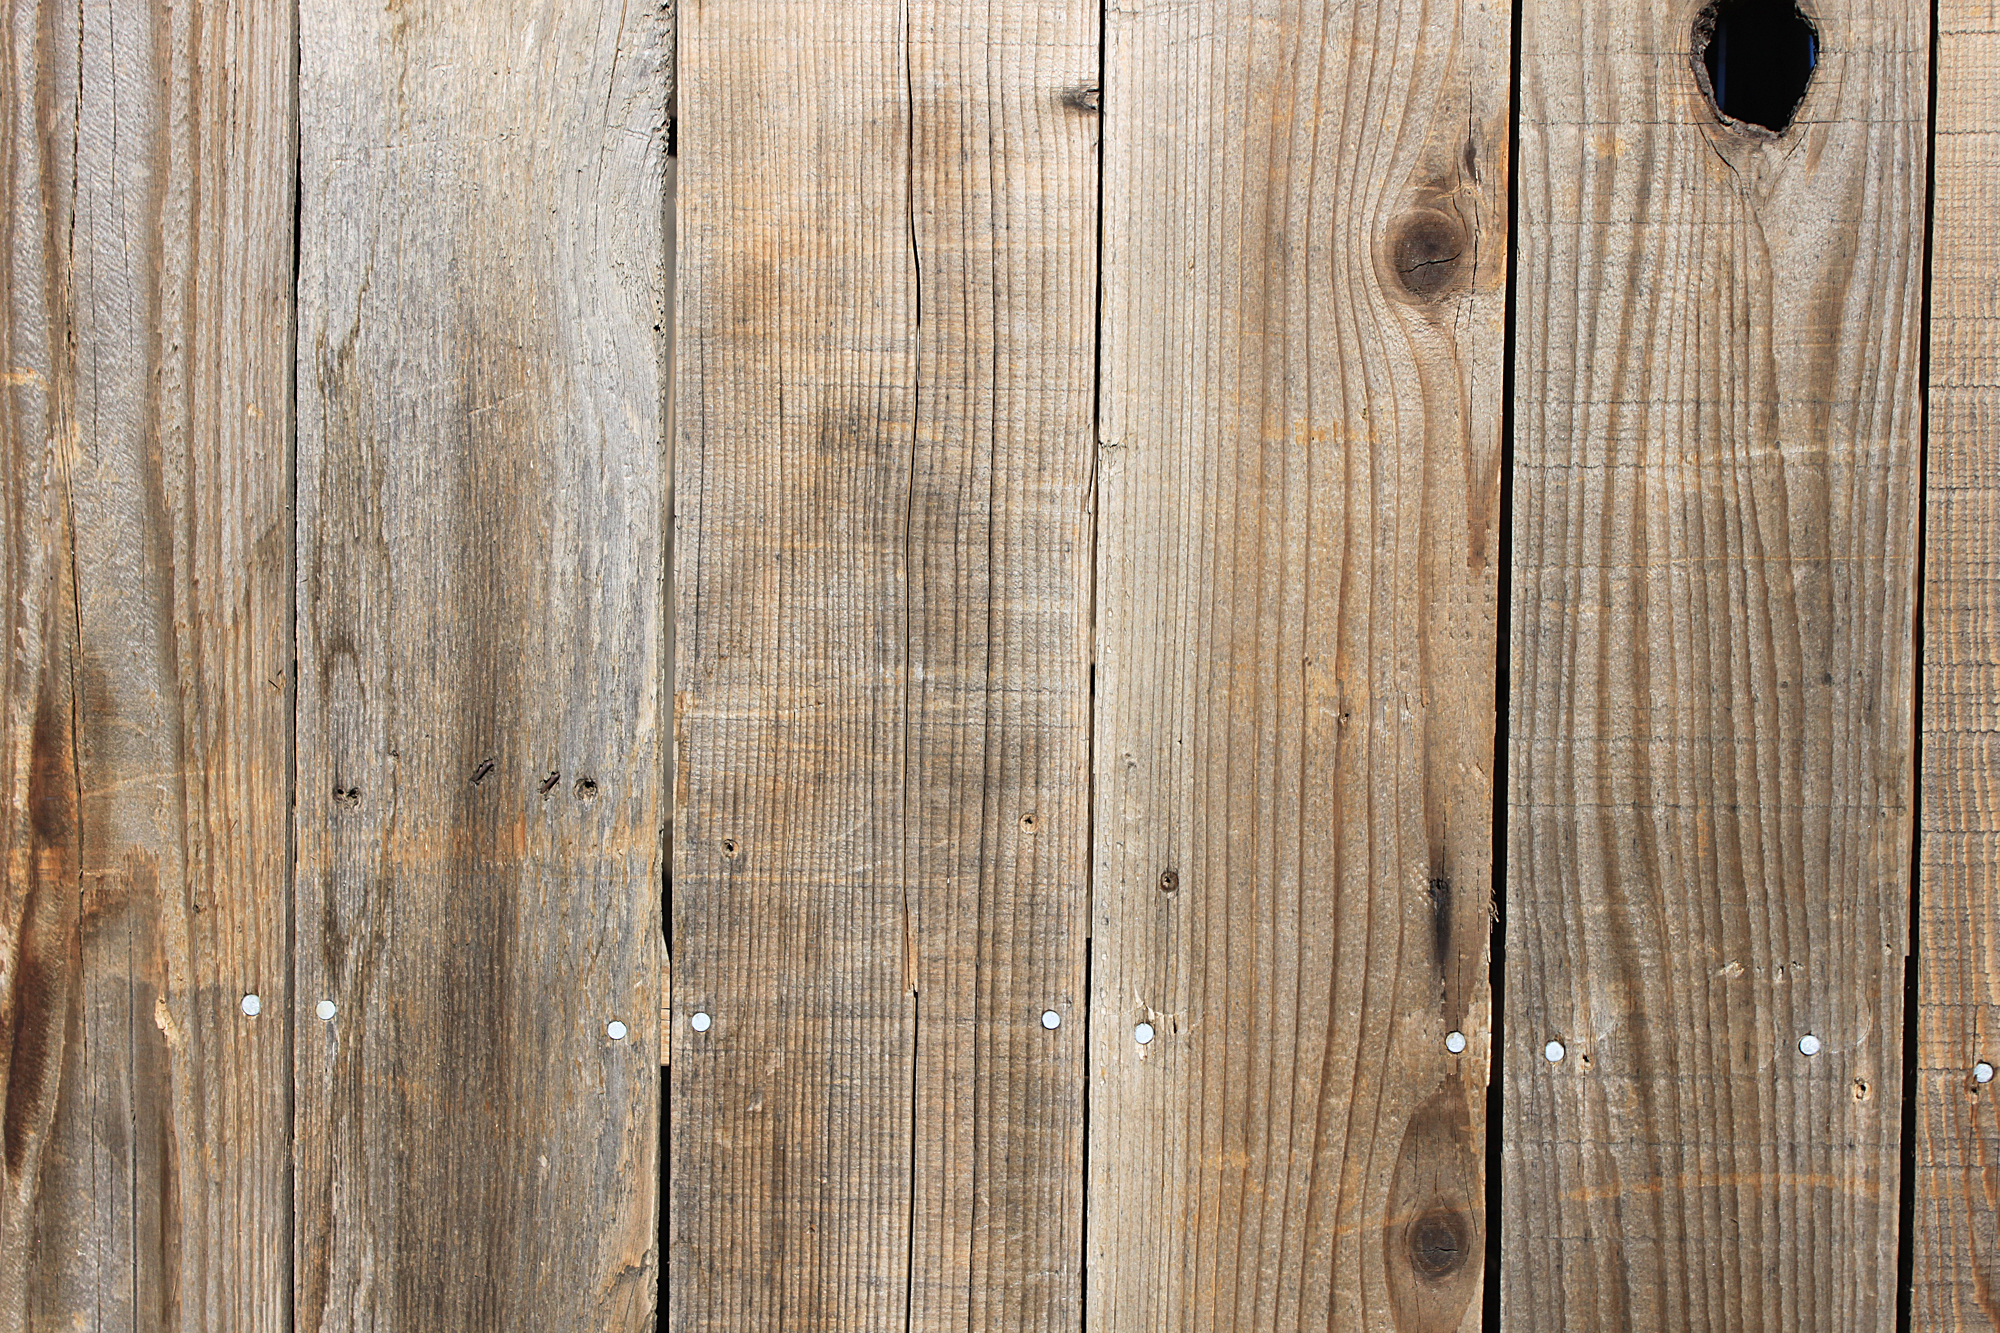 Totally FREE High Res Rustic Wooden Textures and Graphic Elements 2000x1333